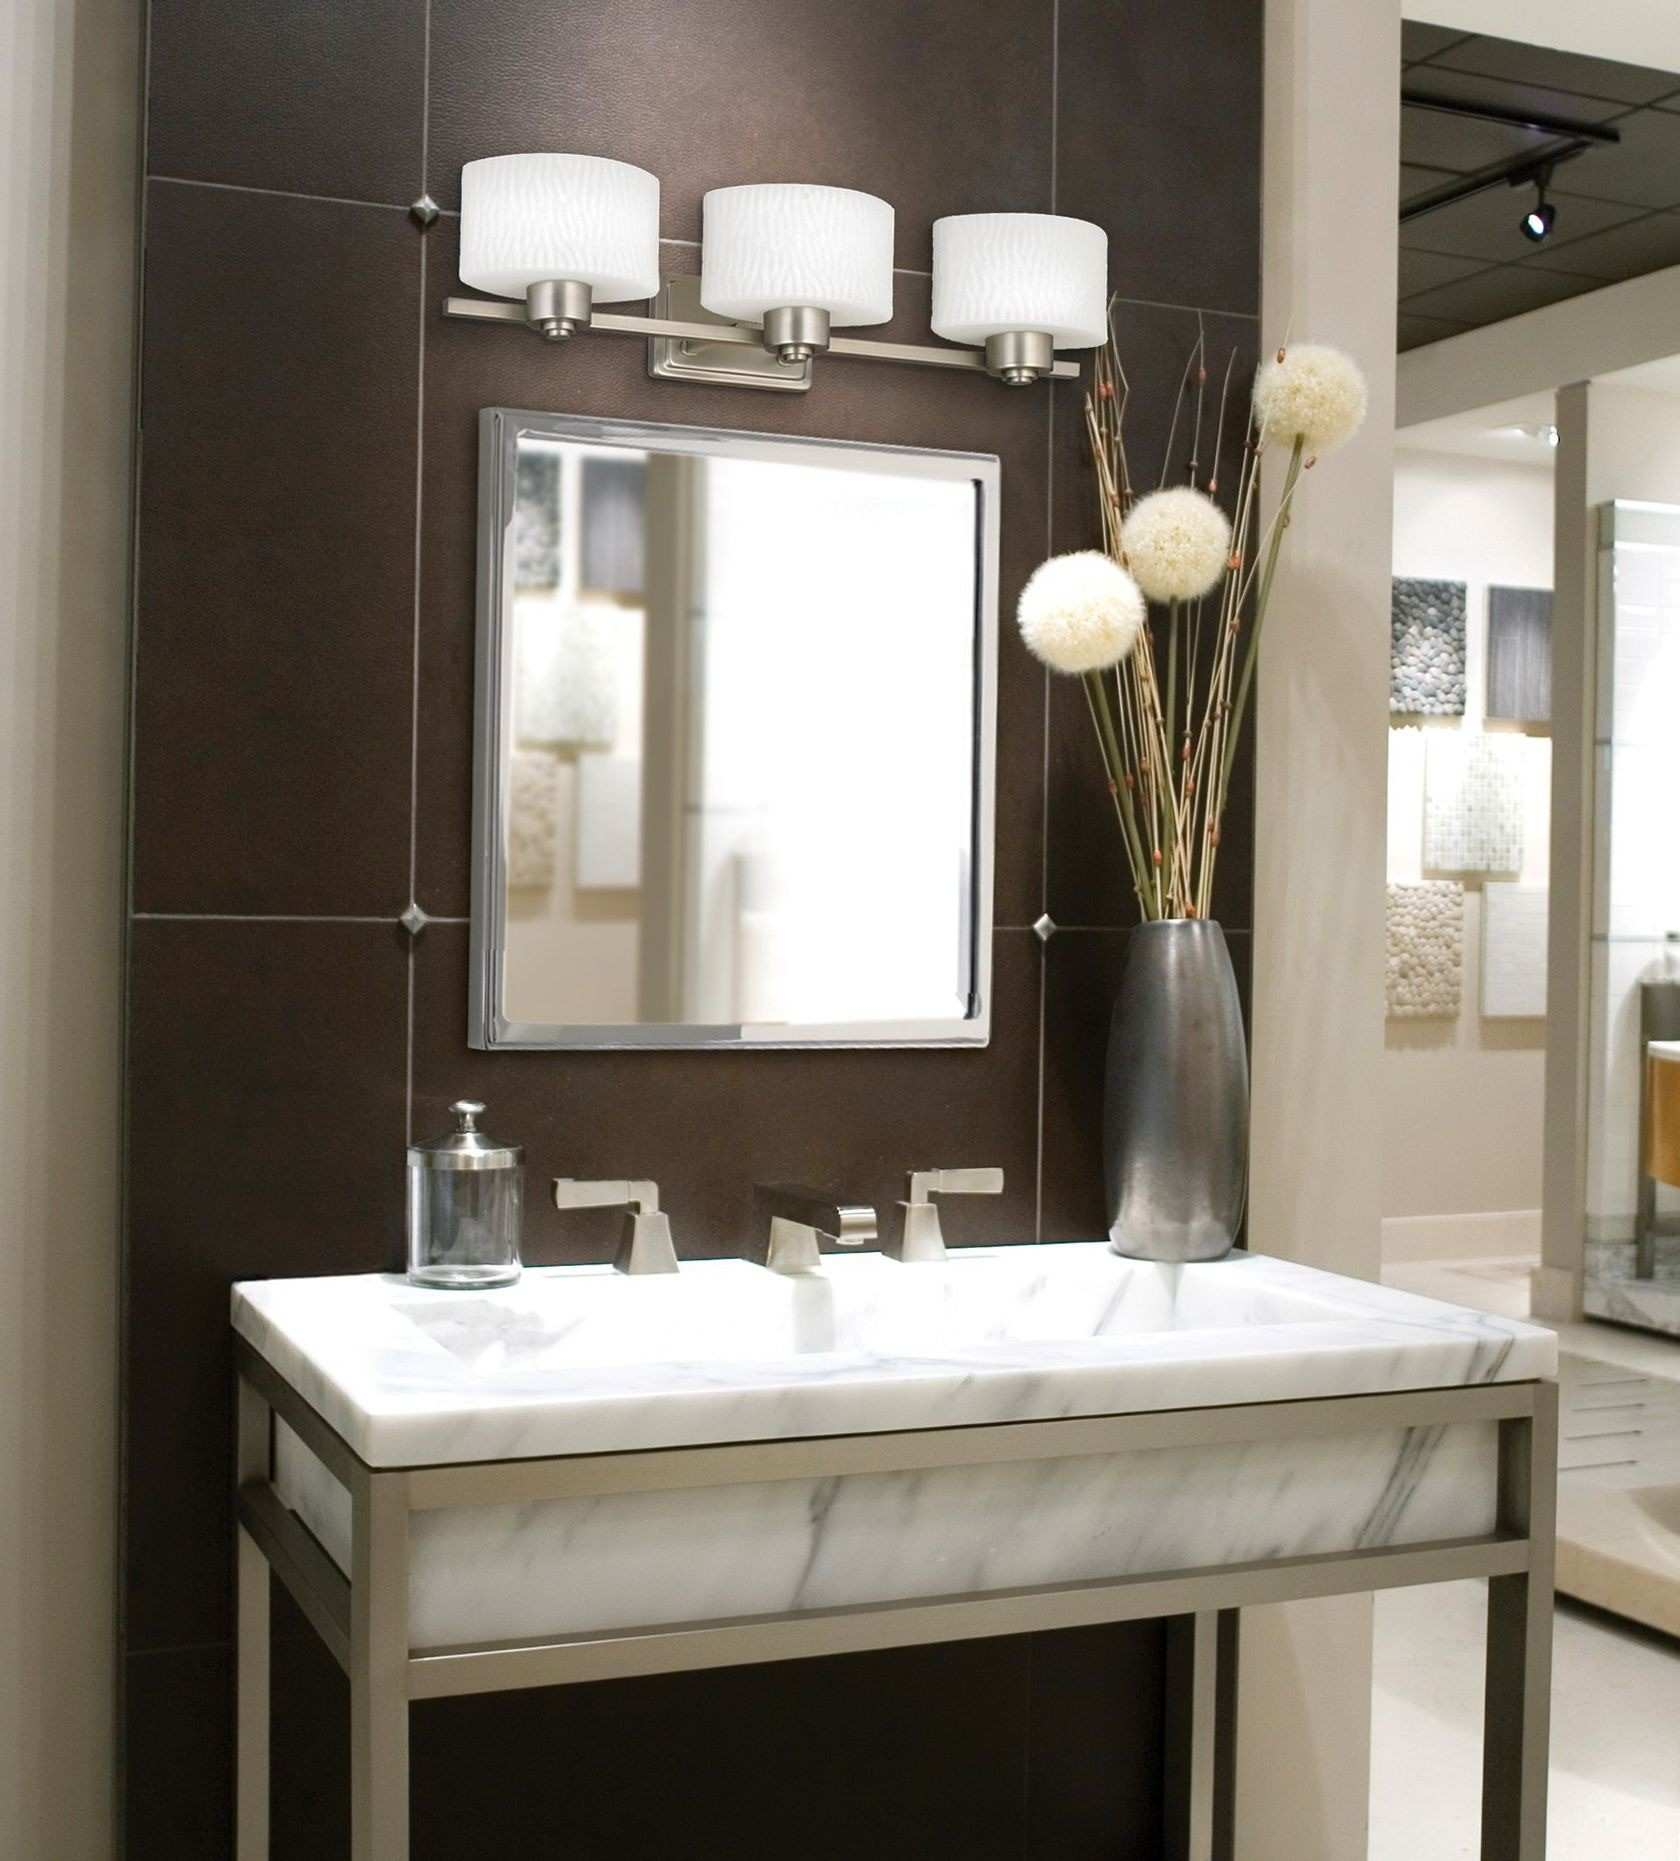 Vanity Mirror with Lights for Bedroom Beautiful Vanity Mirrors for